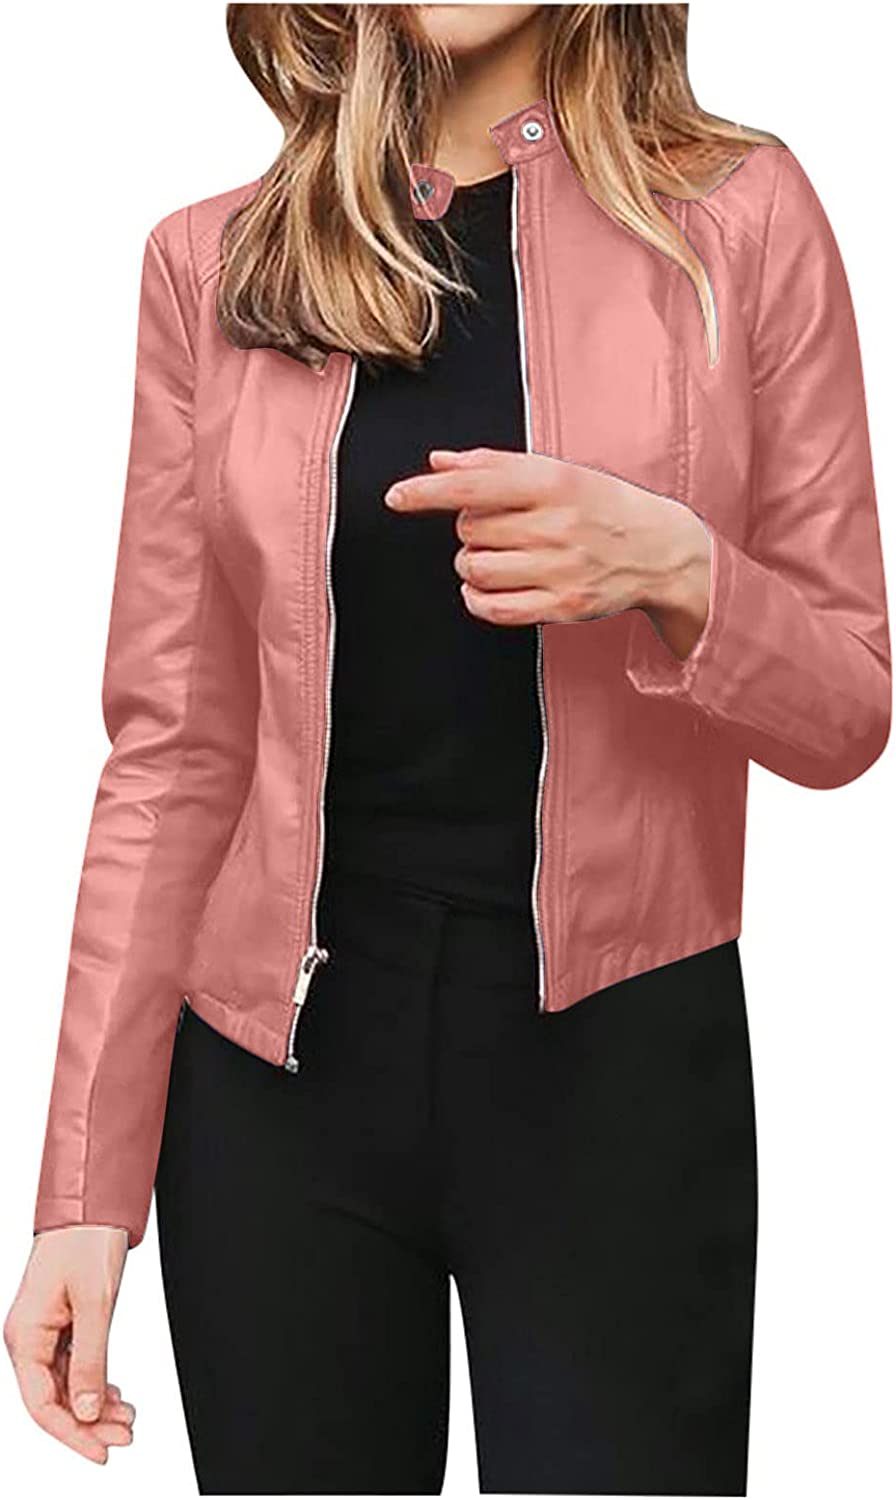 Jackets for Women,Womens Tops Fashion Comfy O-Neck Long Sleeve Solid Colors Zipper Leather Coats Ladies Short Slim Fit Blouse